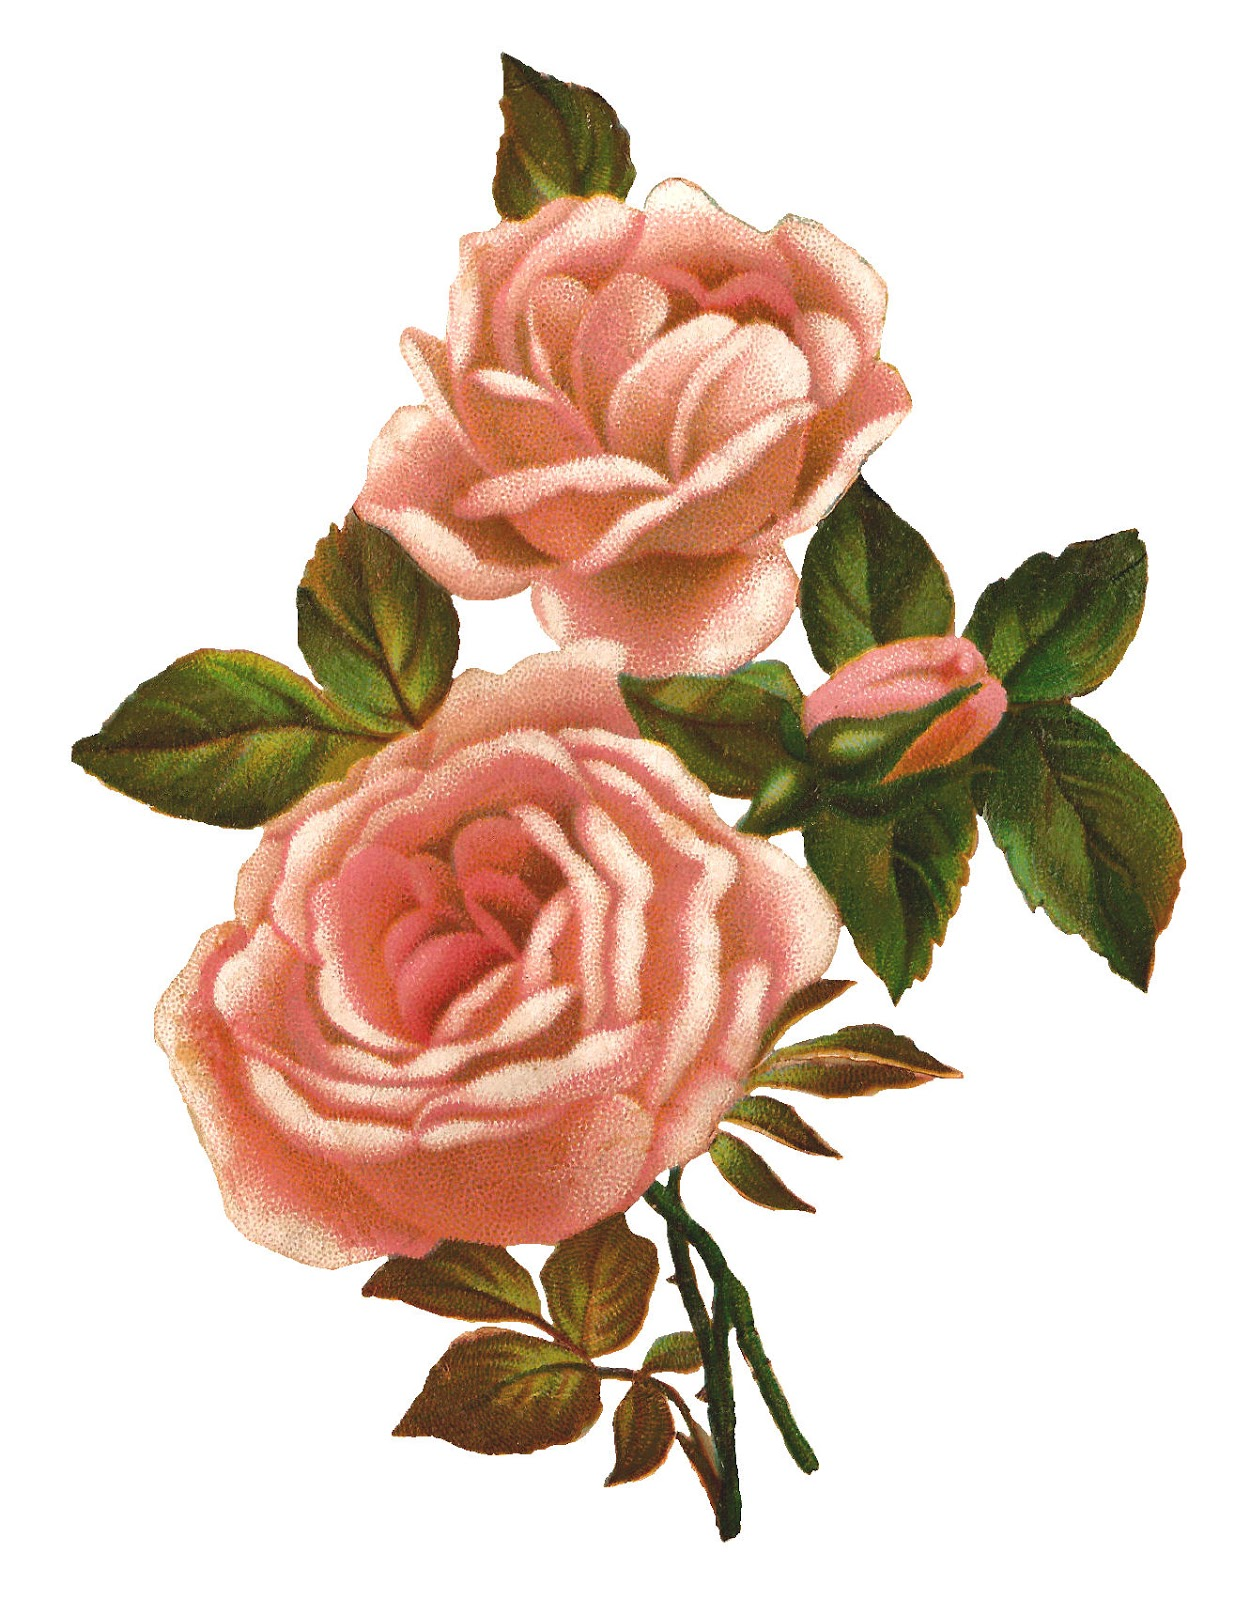 Antique Images Pink Rose Stock Image Vintage Shabby Flower Clip Art